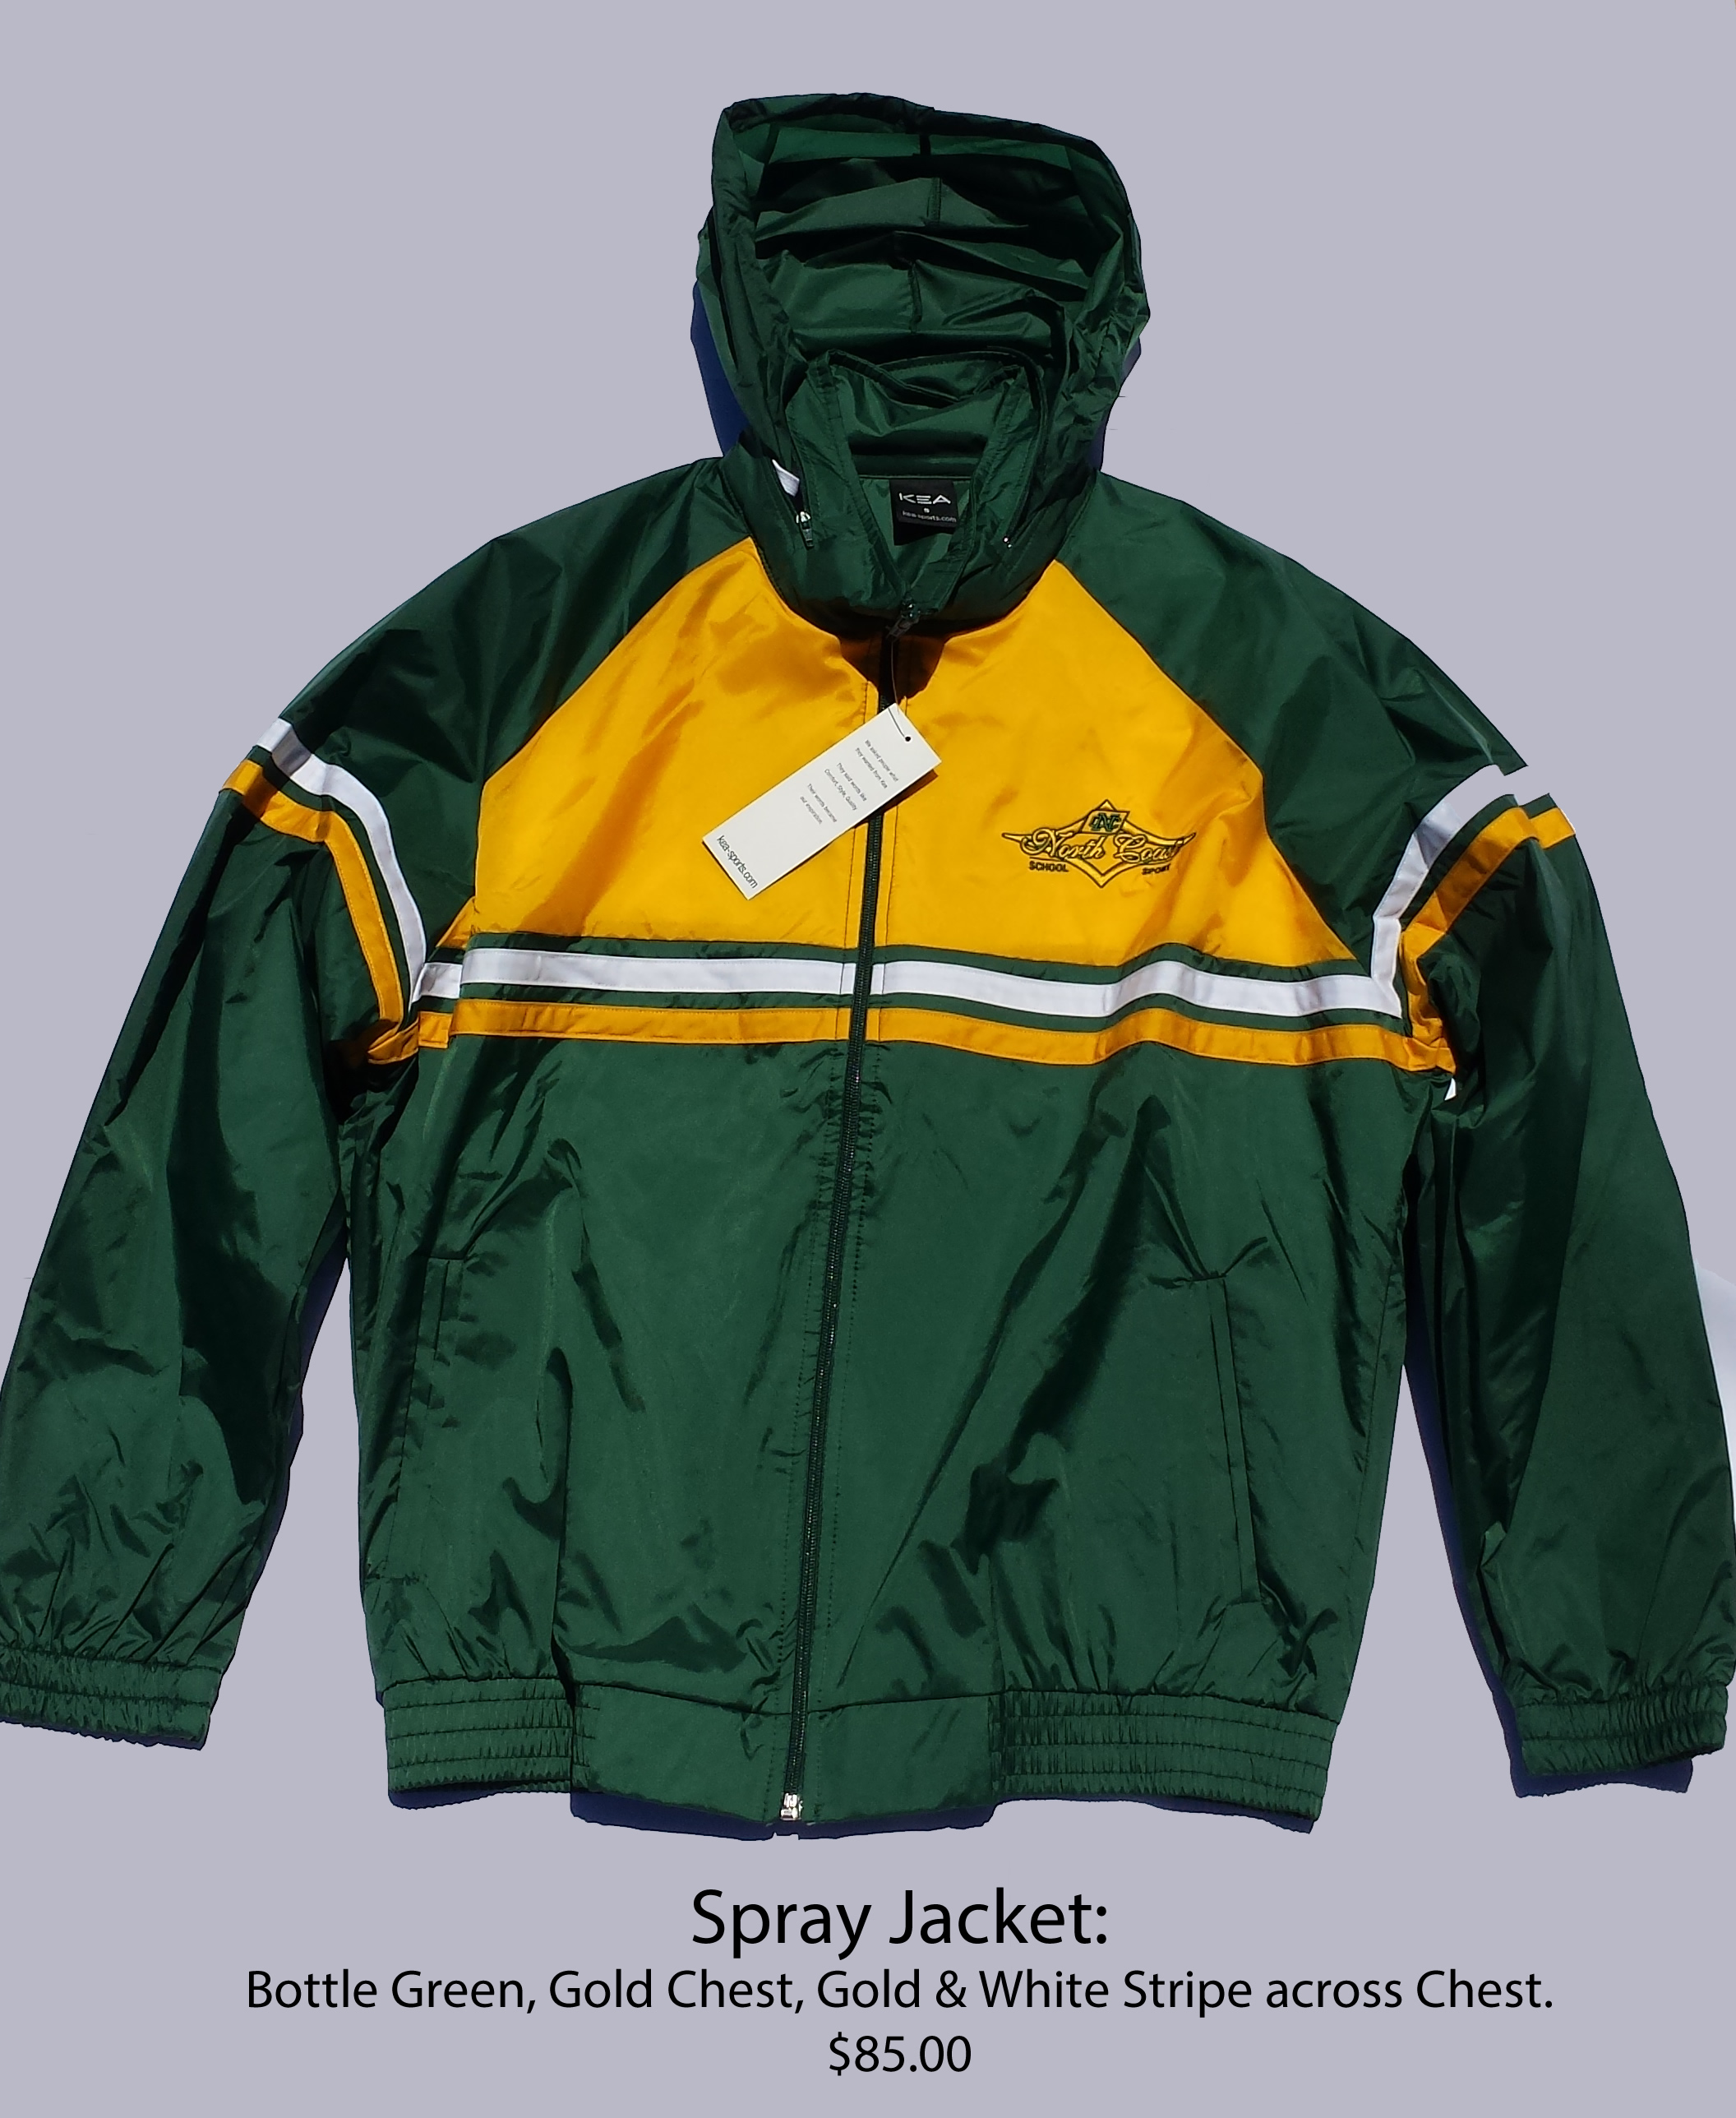 North Coast Spray Jacket $85.00